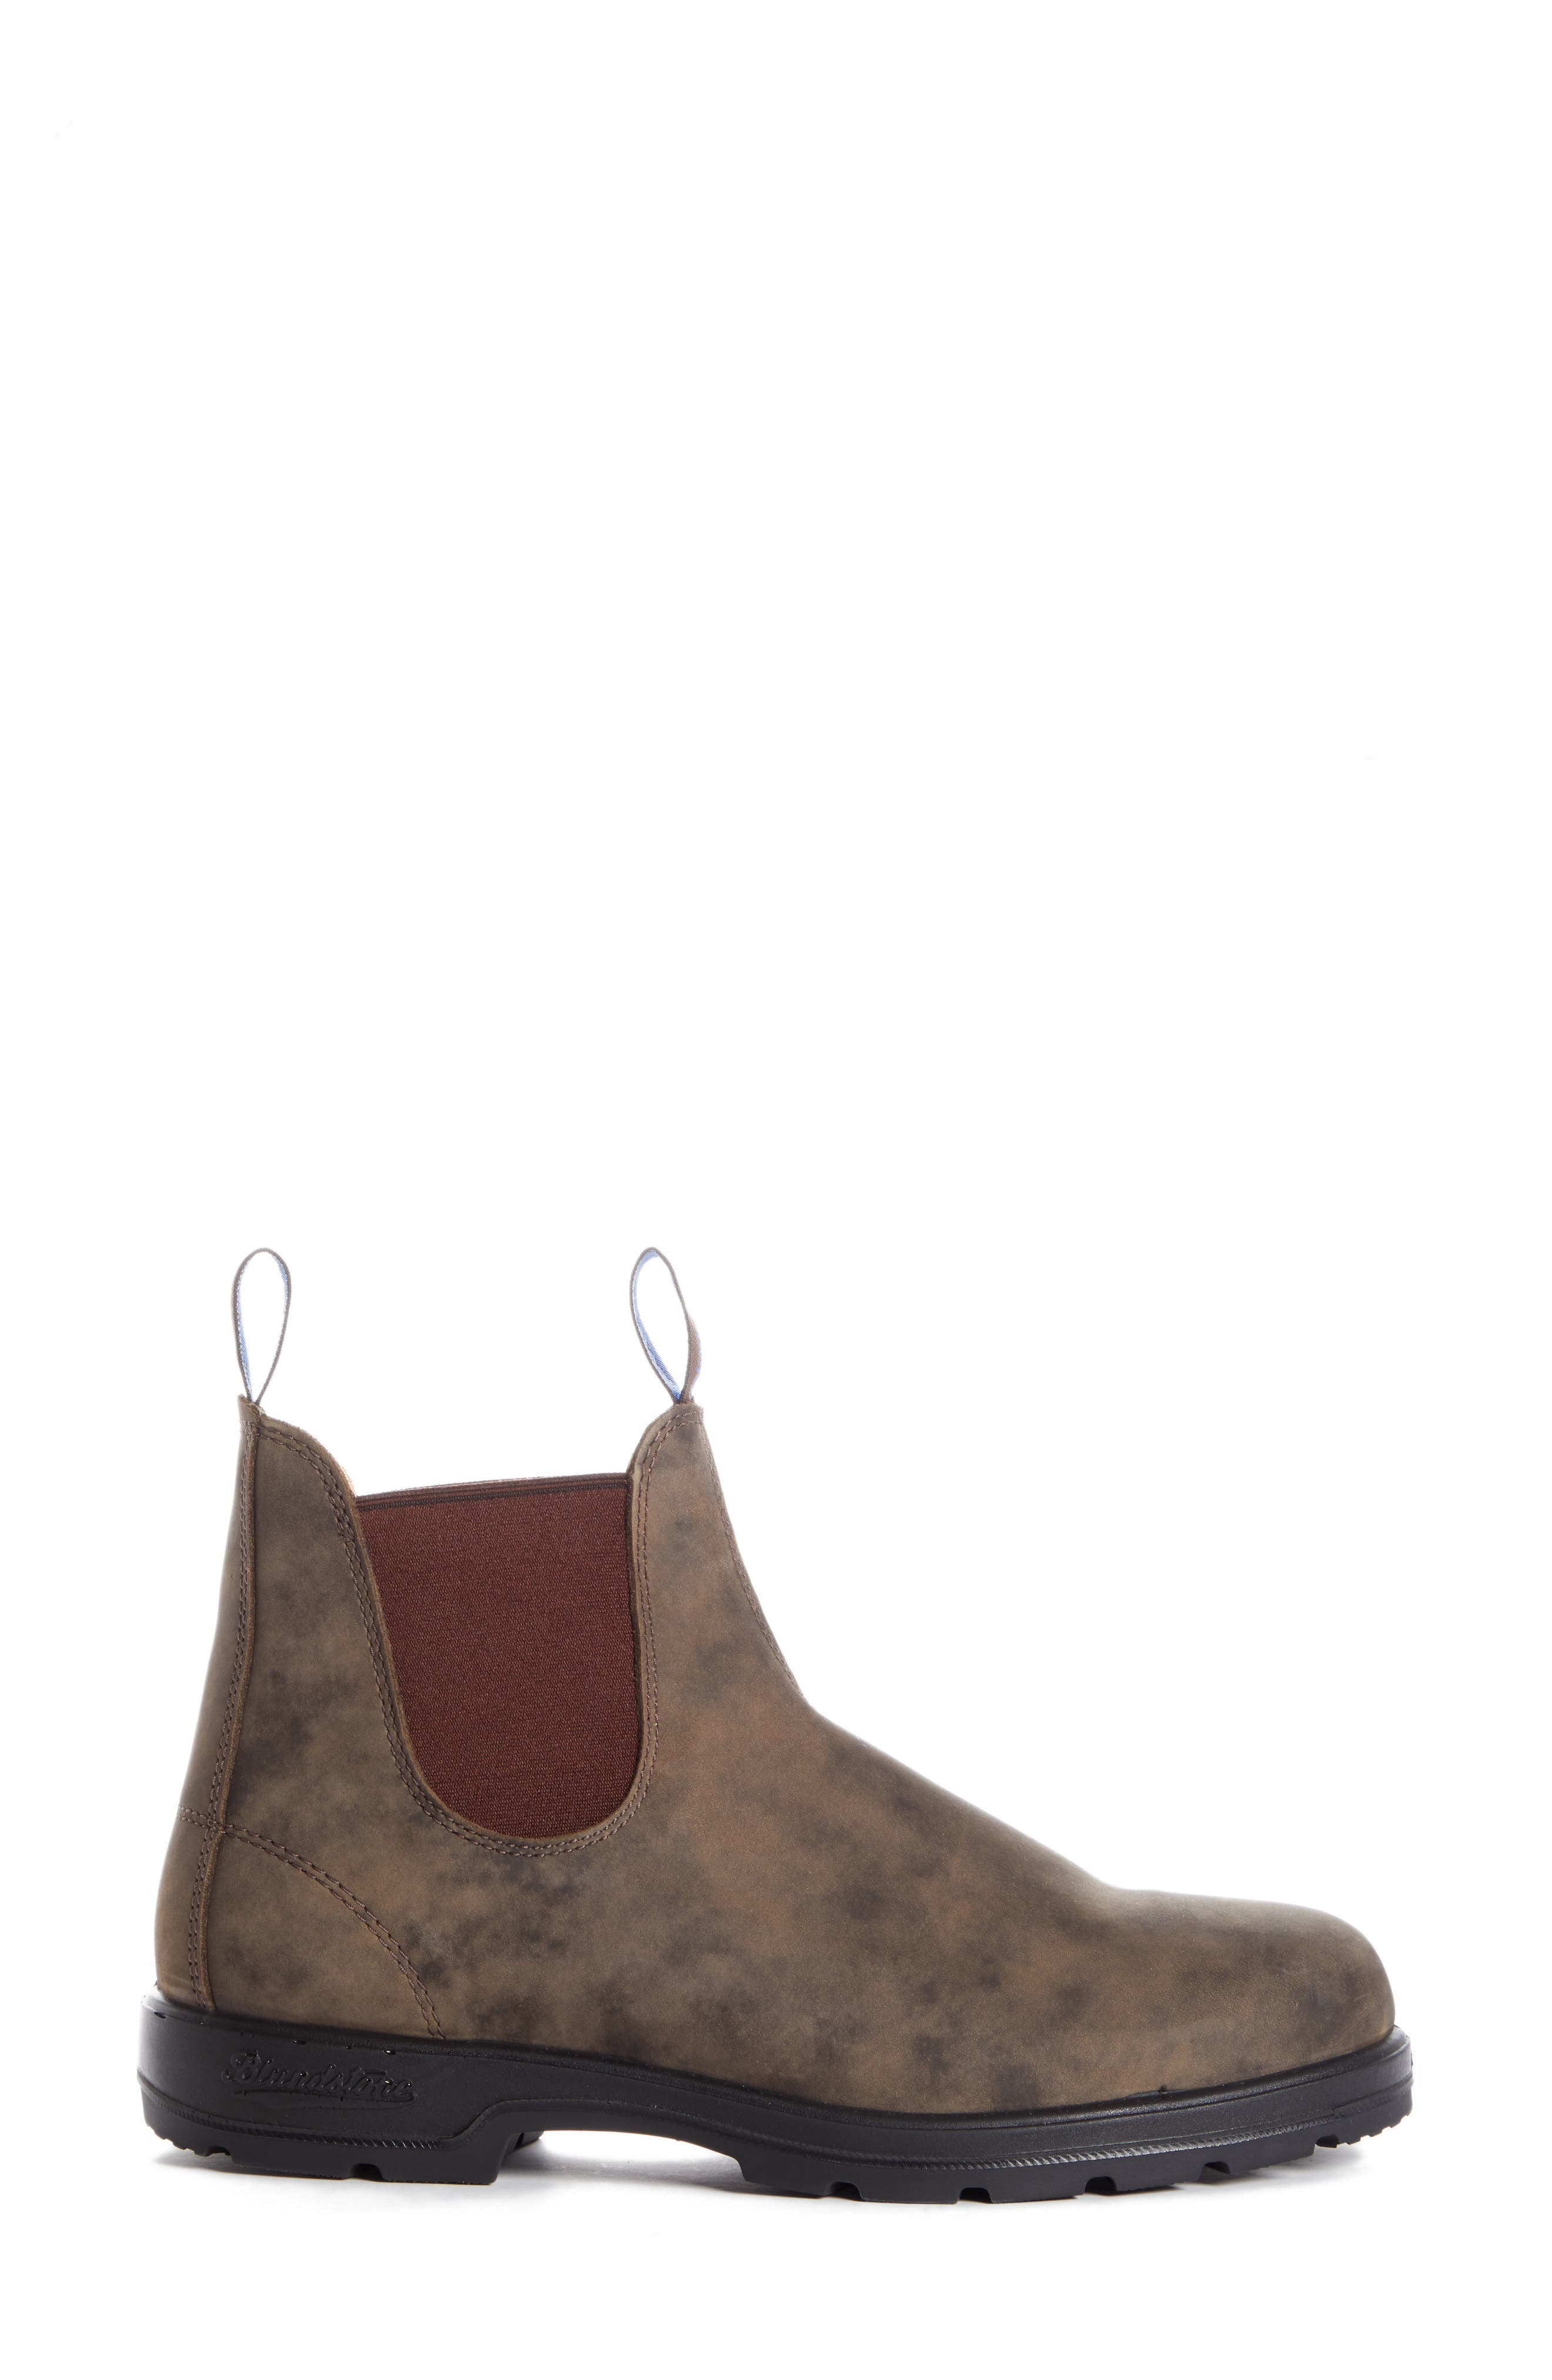 BLUNDSTONE Style 584 Waterproof Leather Thermal Boot in Rustic Brown